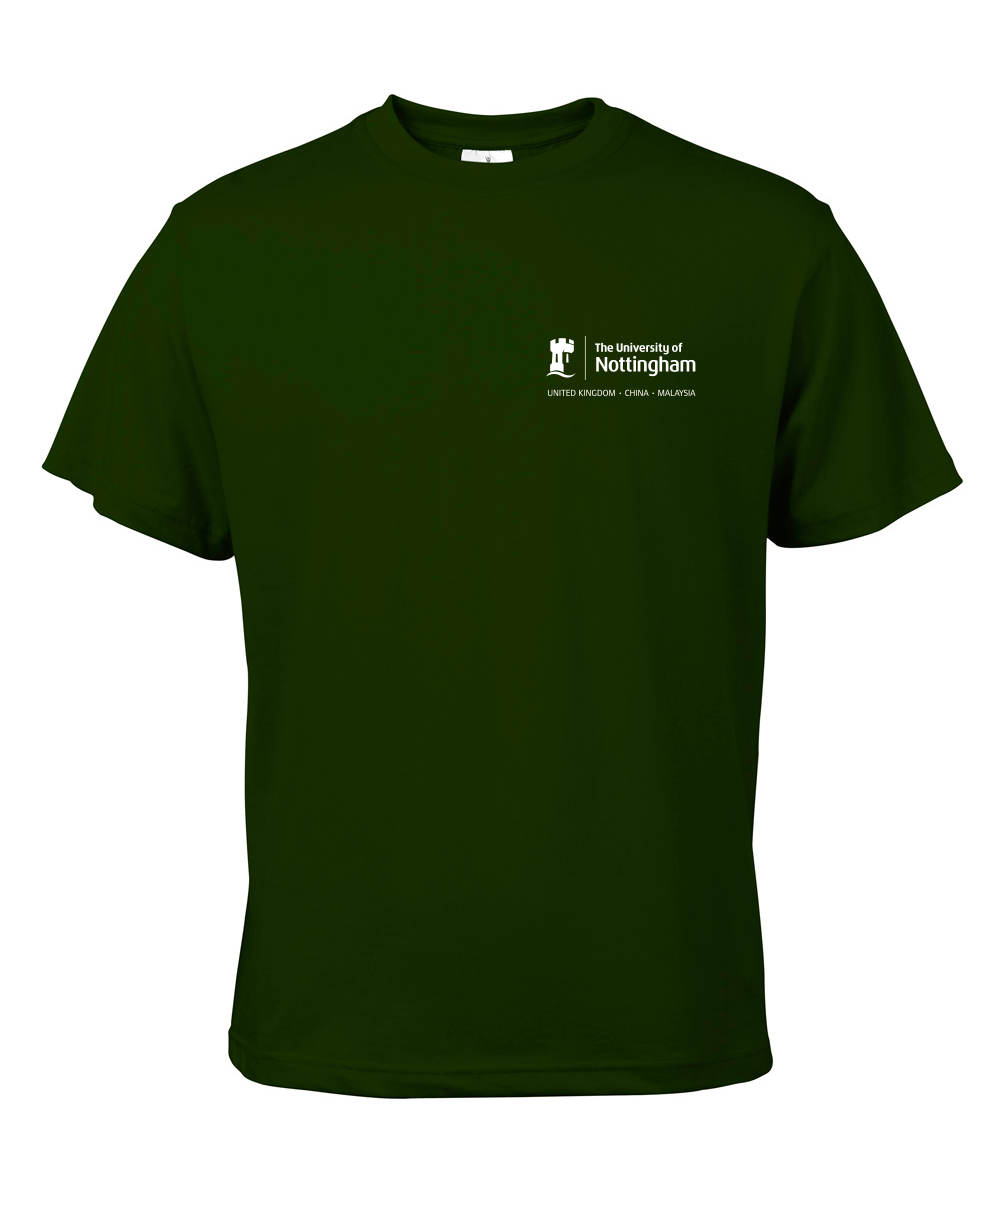 GD01-GD01-NOTTS LOGO-Nottingham T-Shirt